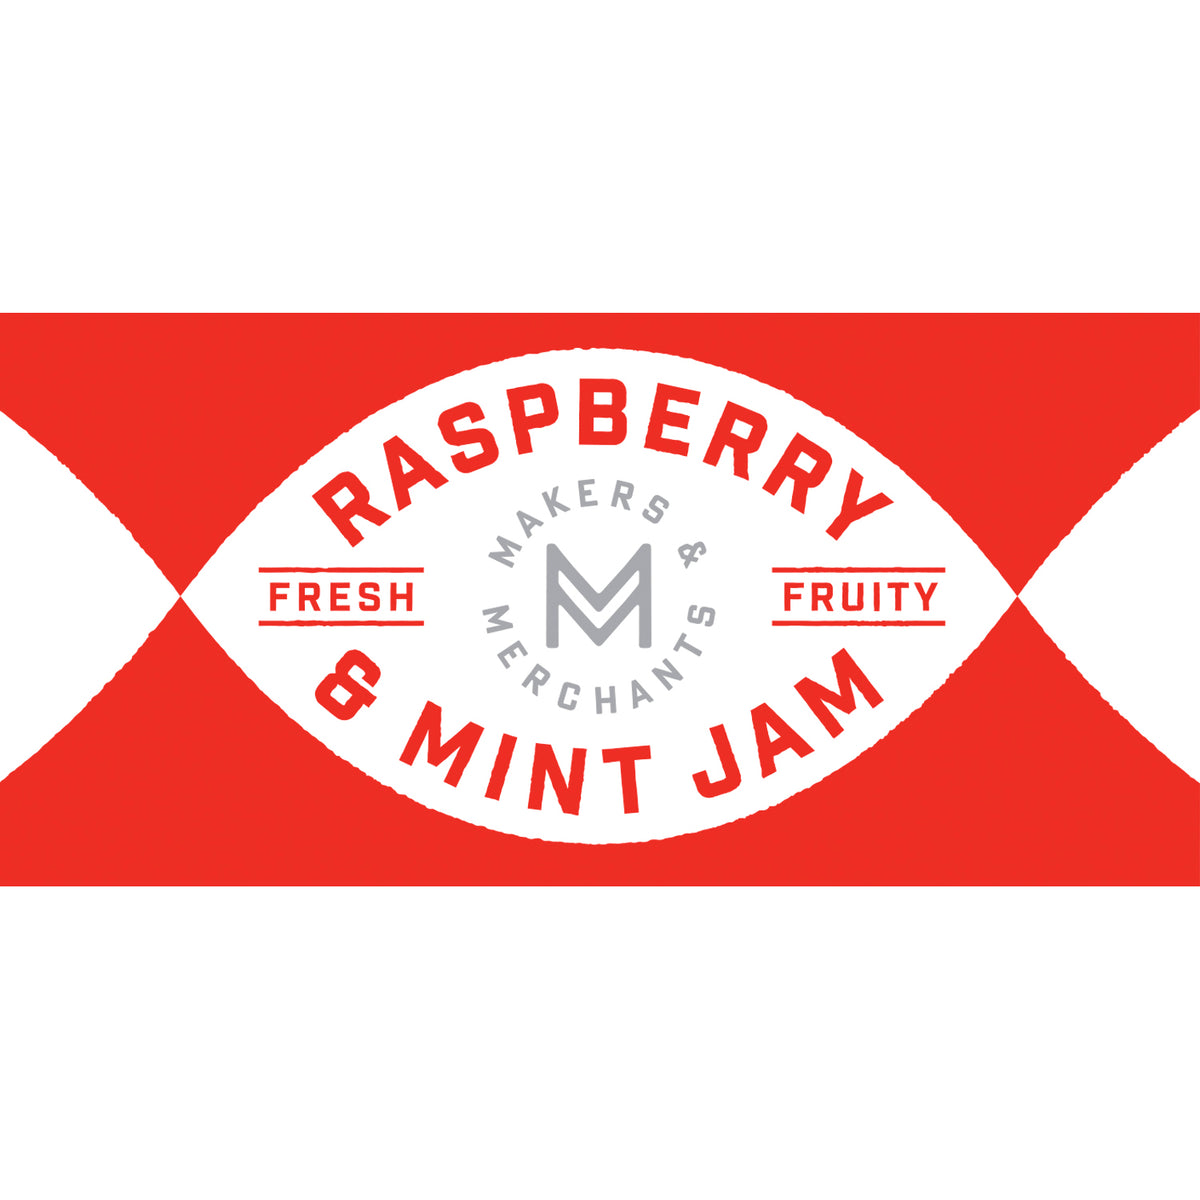 Pick Your Own Raspberry & Mint Jam